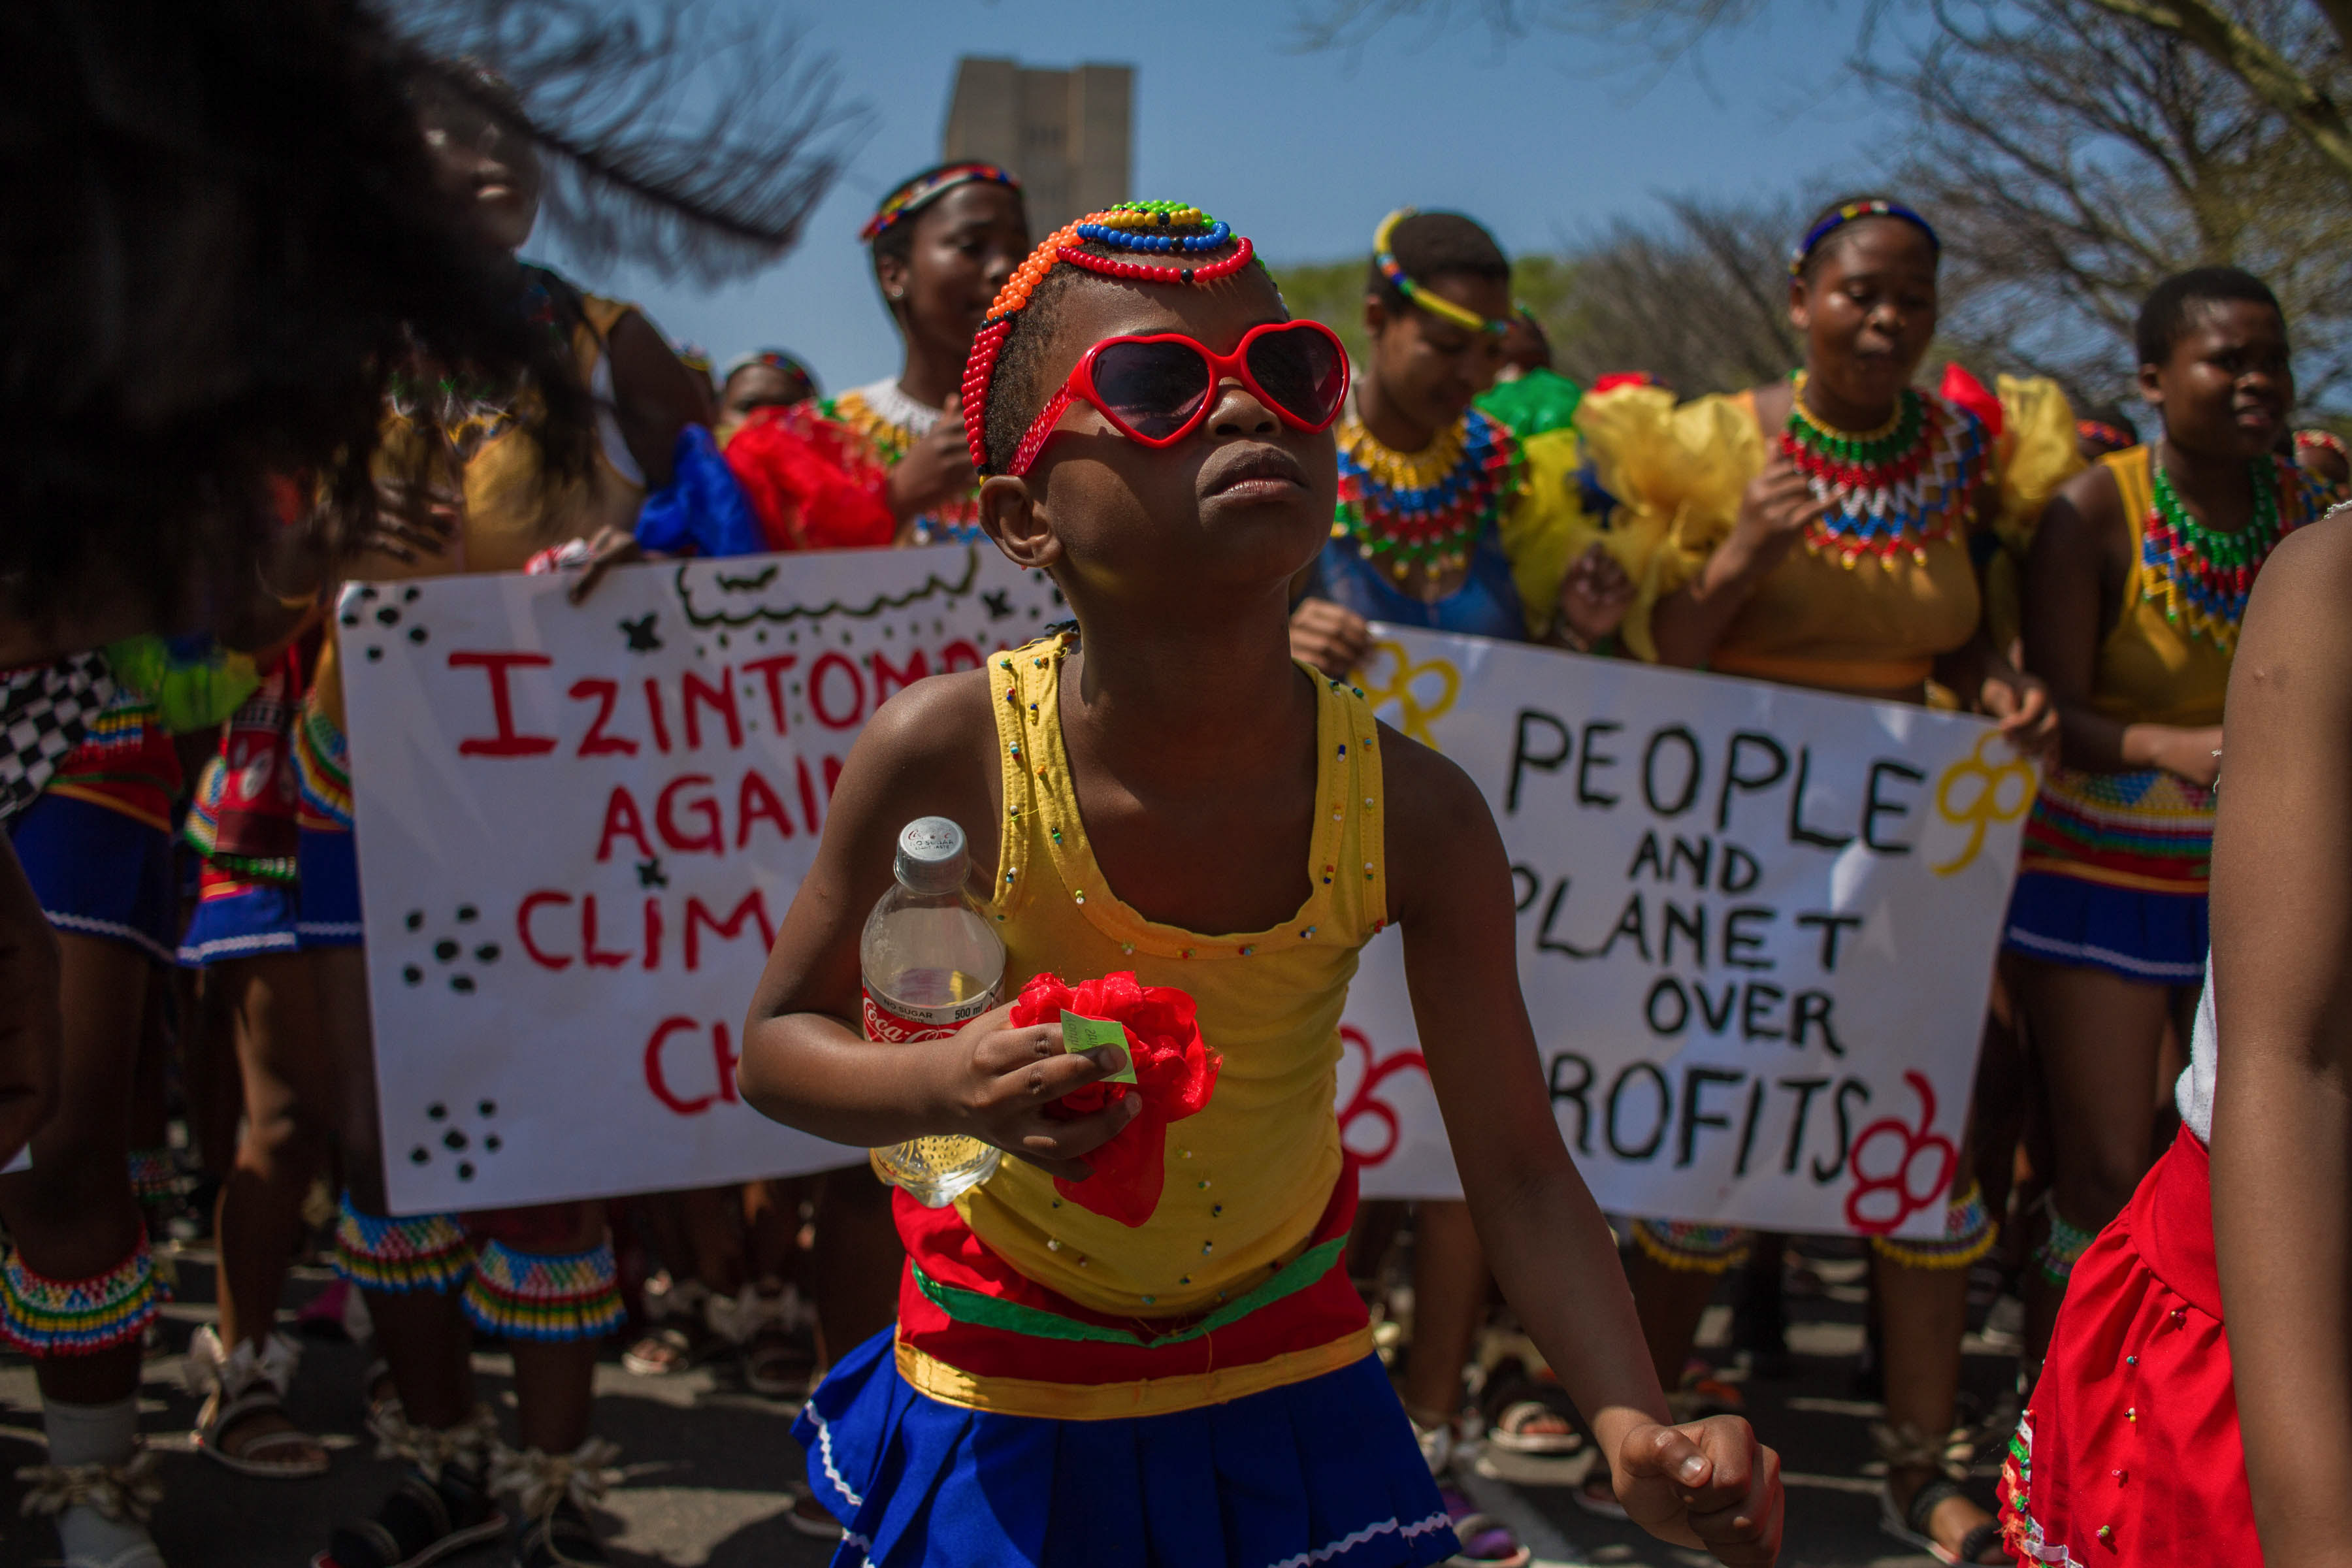 20 September 2019: Senamile Mlambo, 9, lead young women in the streets of Durban, as he chants the zulu song Sengibekezele kwaze kwasa ngibekezele, which is about about patience. (Photograph by Mlungisi Mbele)